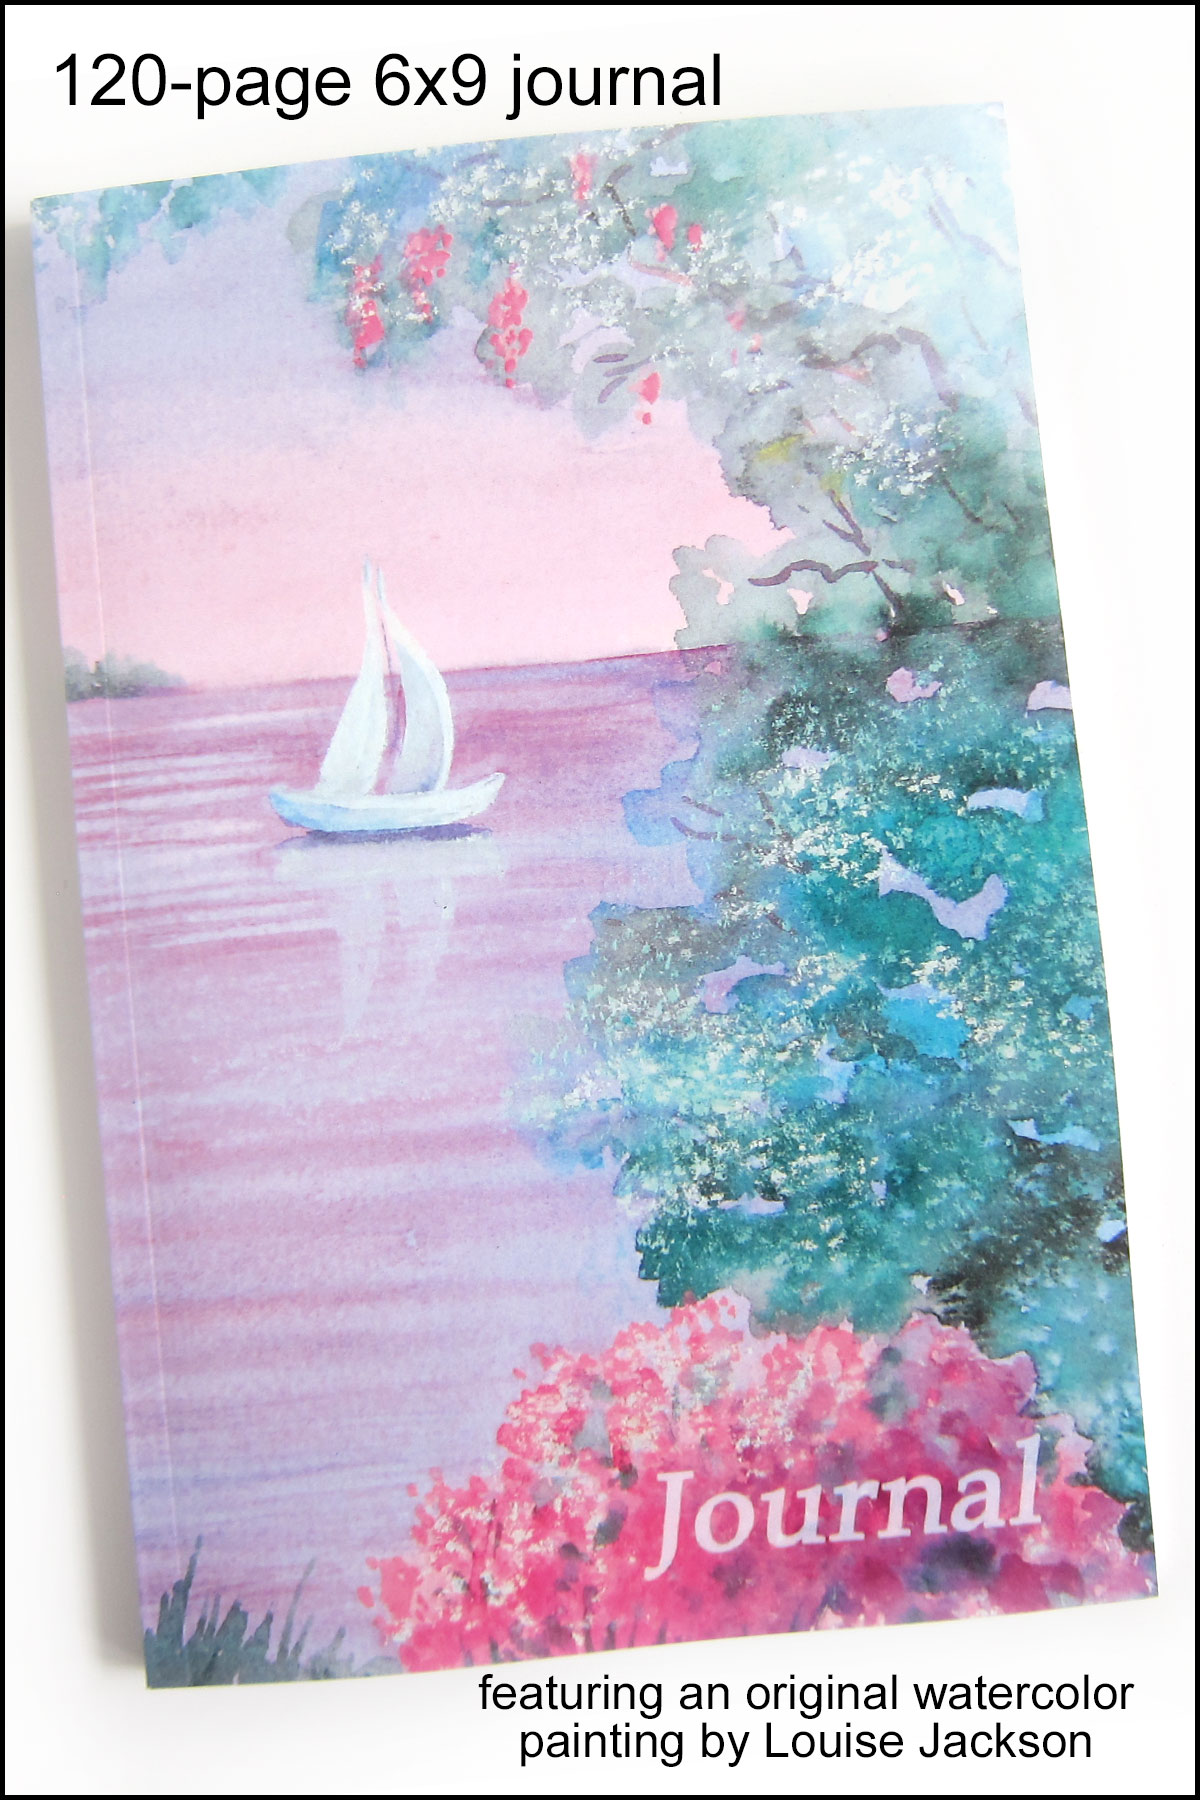 120-page 6x9 journal featuring a beautiful watercolor painting of a sailboat on a lake.